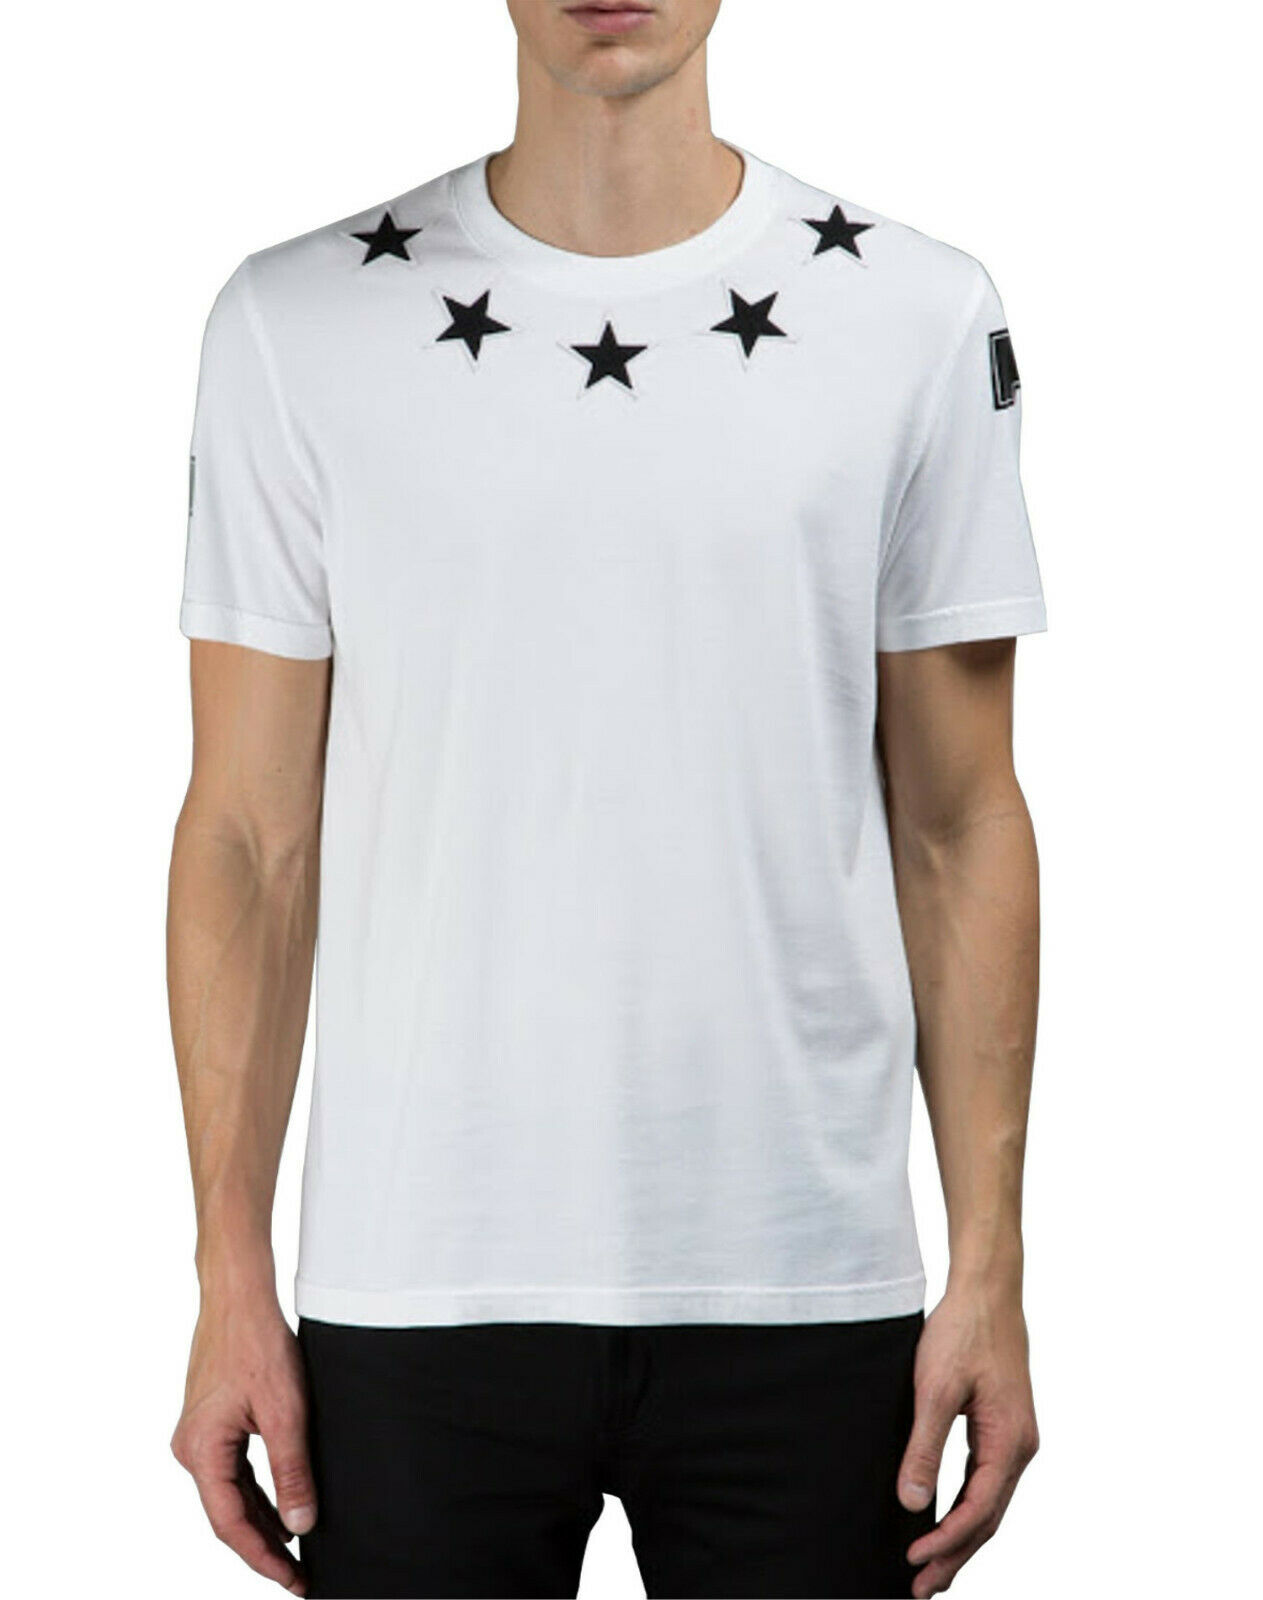 GIVENCHY T-hemd herren Columbian Fit - 16F7221651